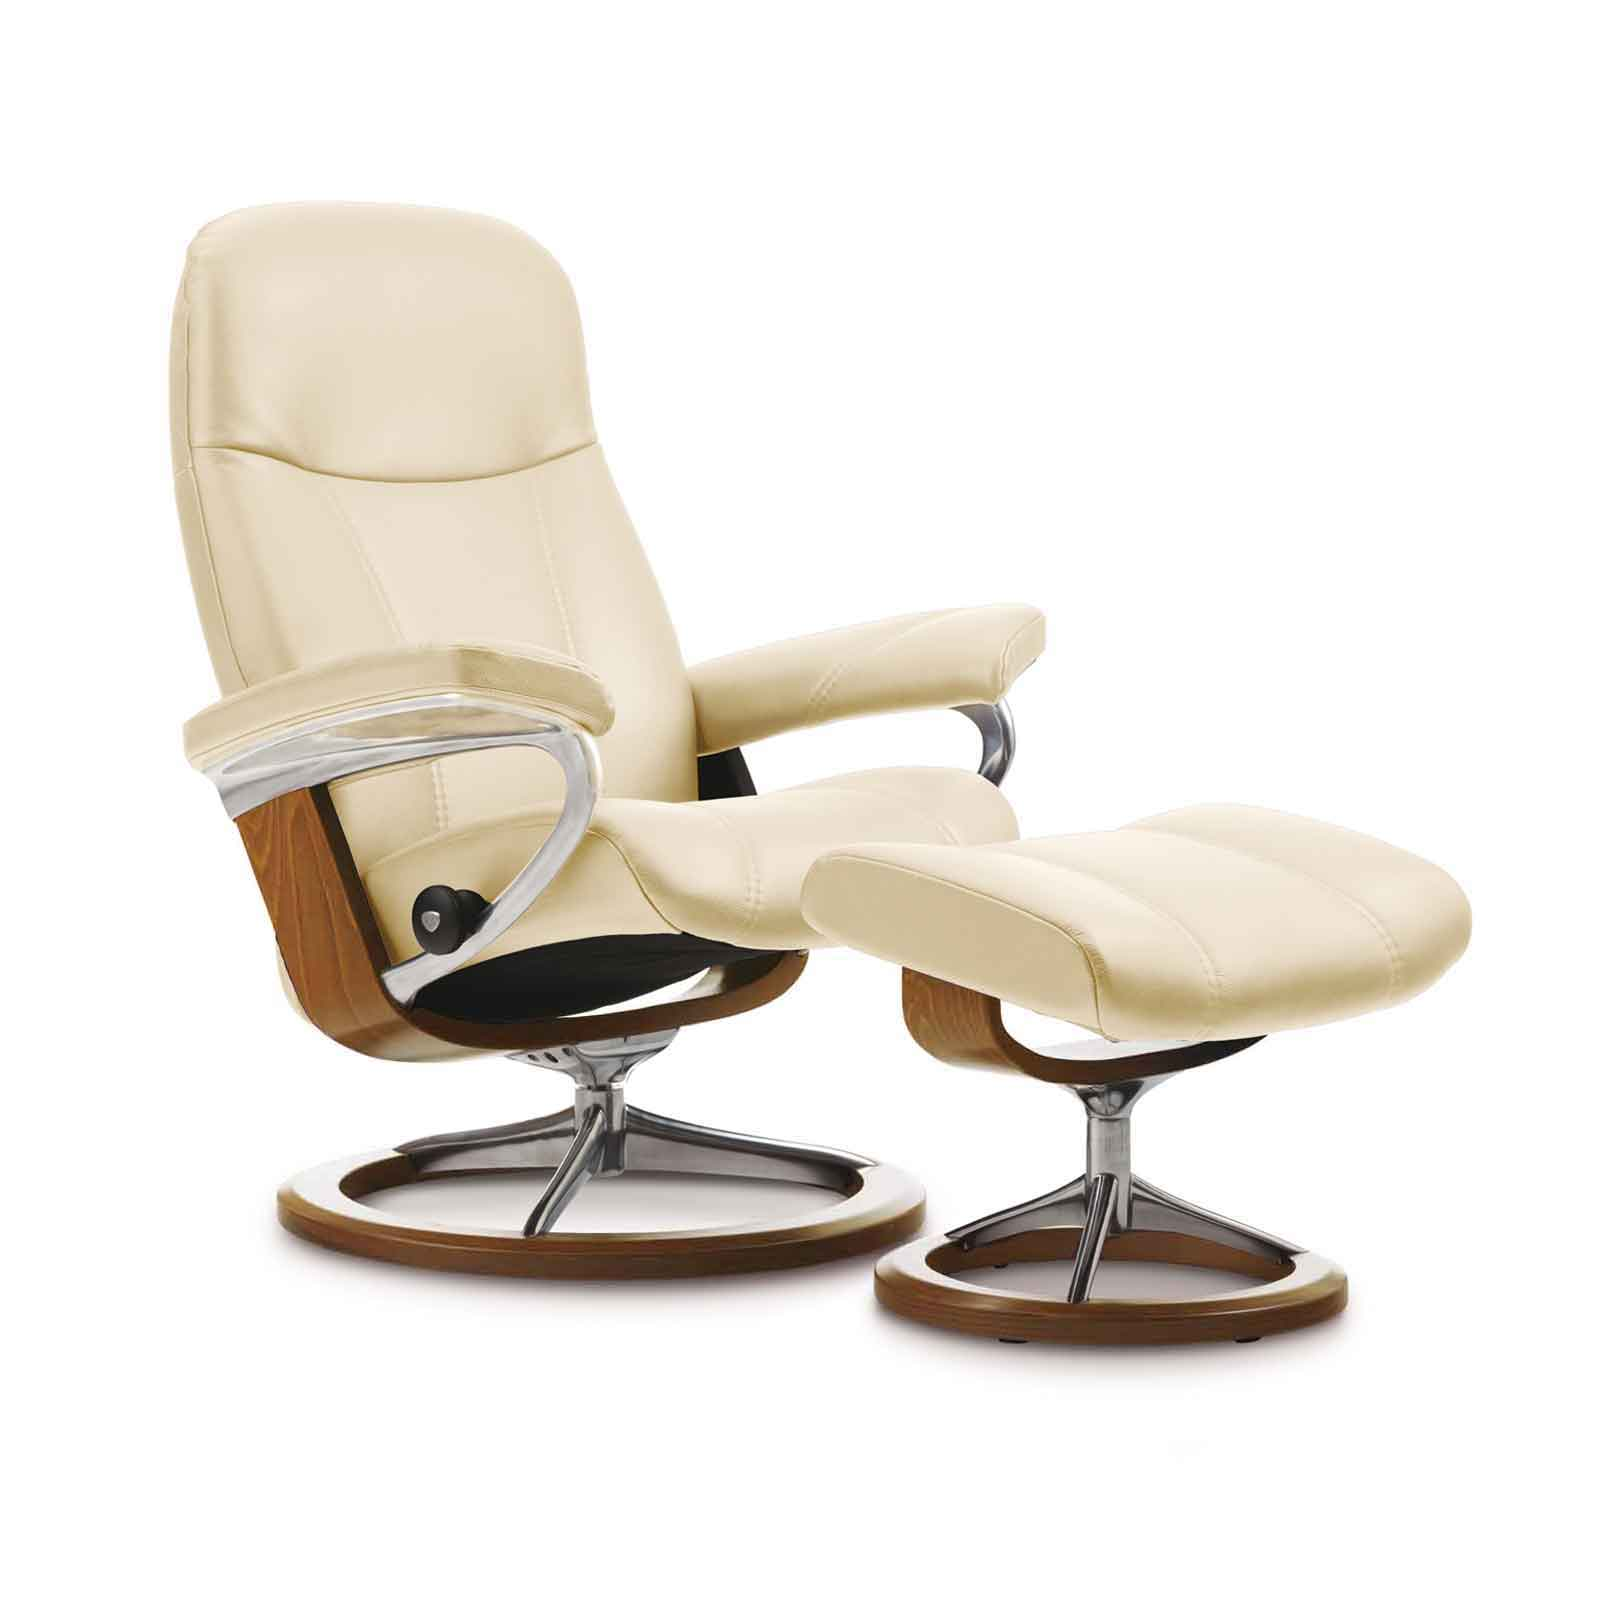 Stressless Sessel Mit Massagefunktion Stressless Sessel Mit Massagefunktion